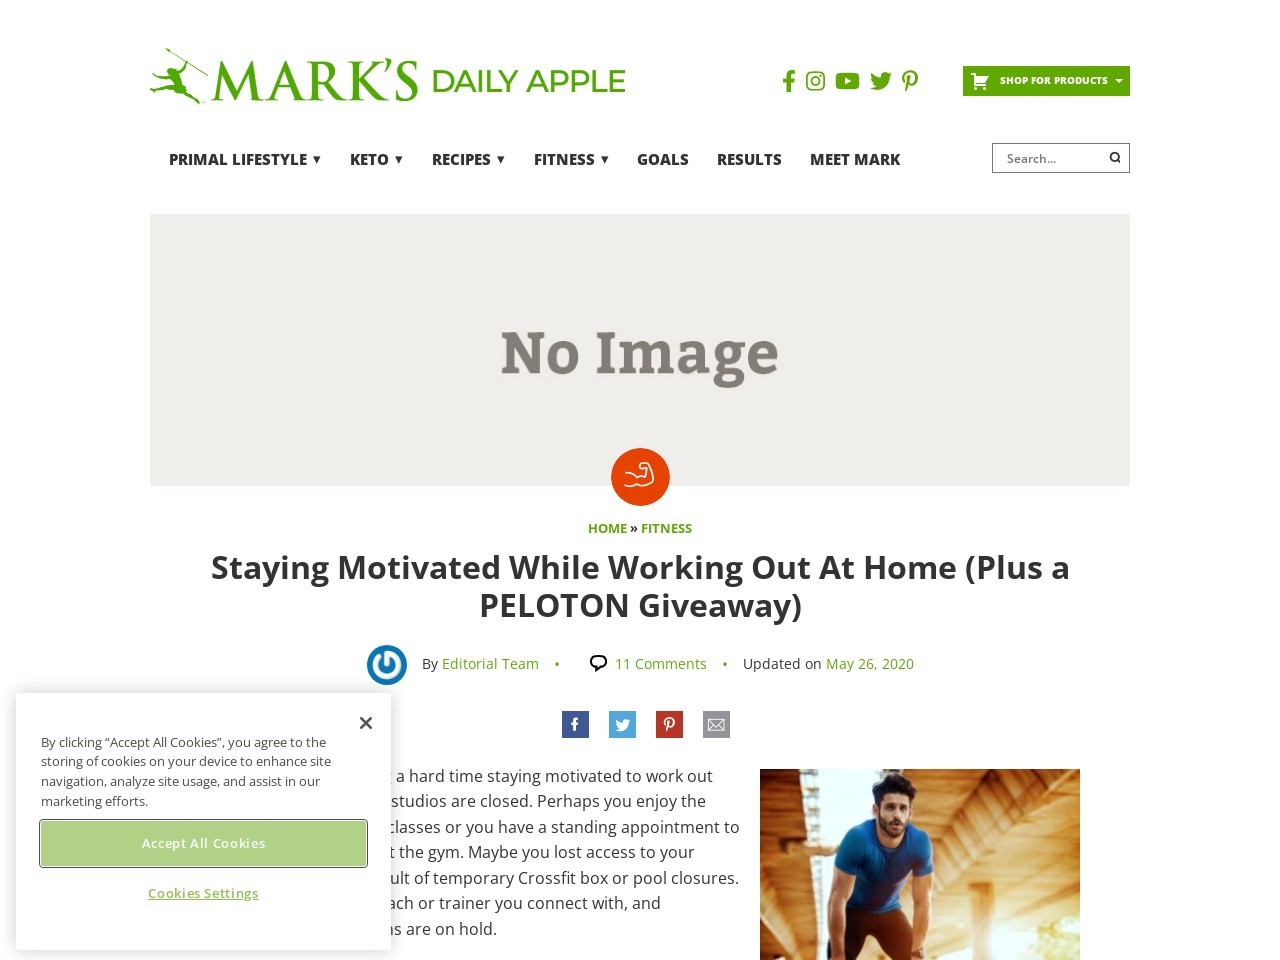 Staying Motivated While Working Out At Home (Plus a PELOTON Giveaway)